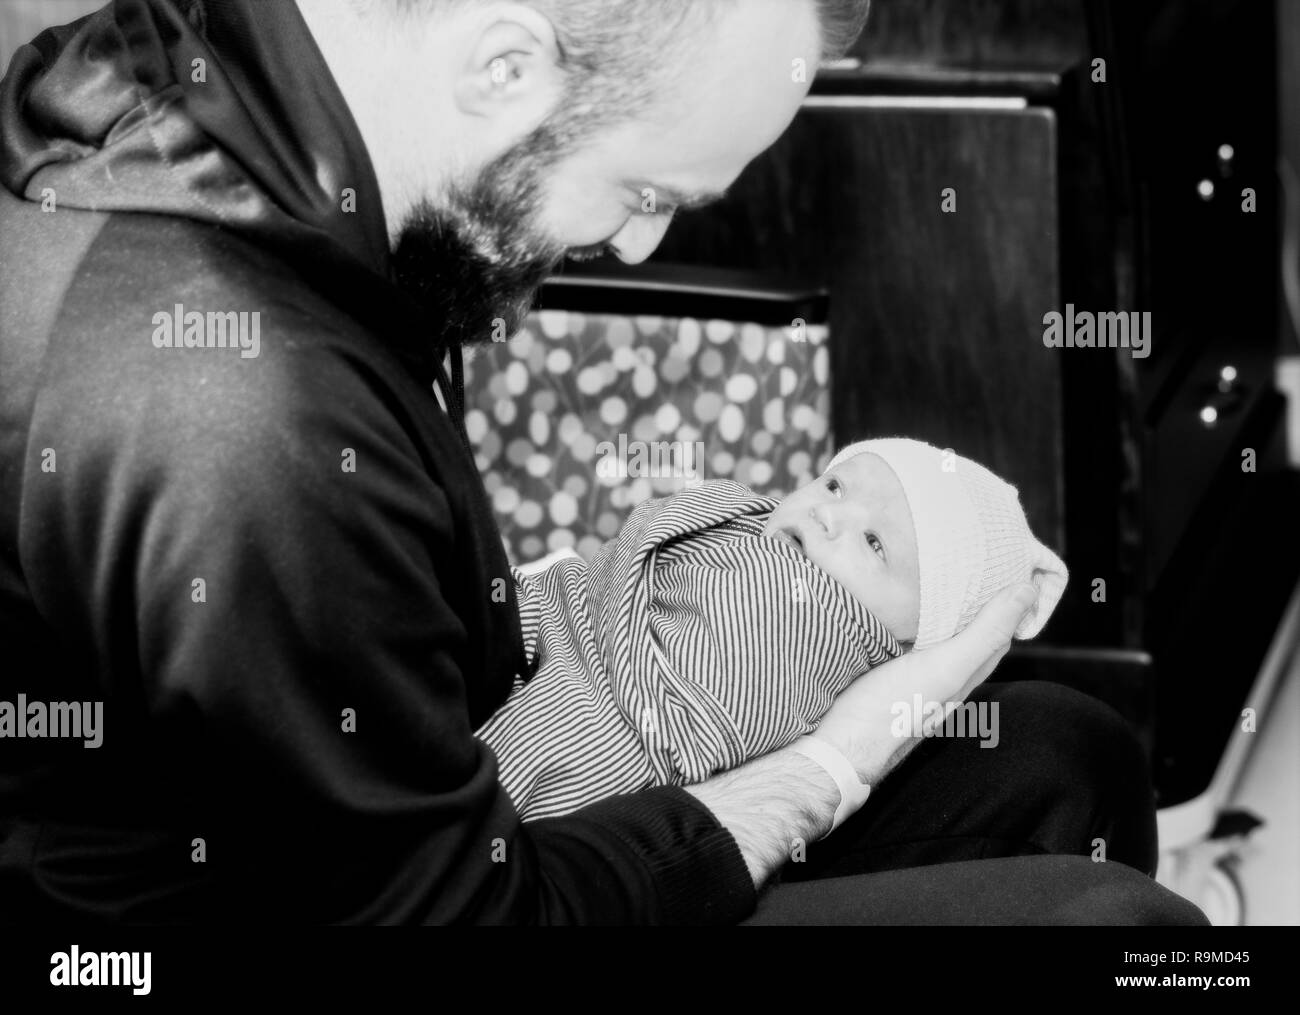 Father Holds Newborn Baby Boy Wrapped in a Blanket As He Looks up at His Dad. Black & White Photo. - Stock Image